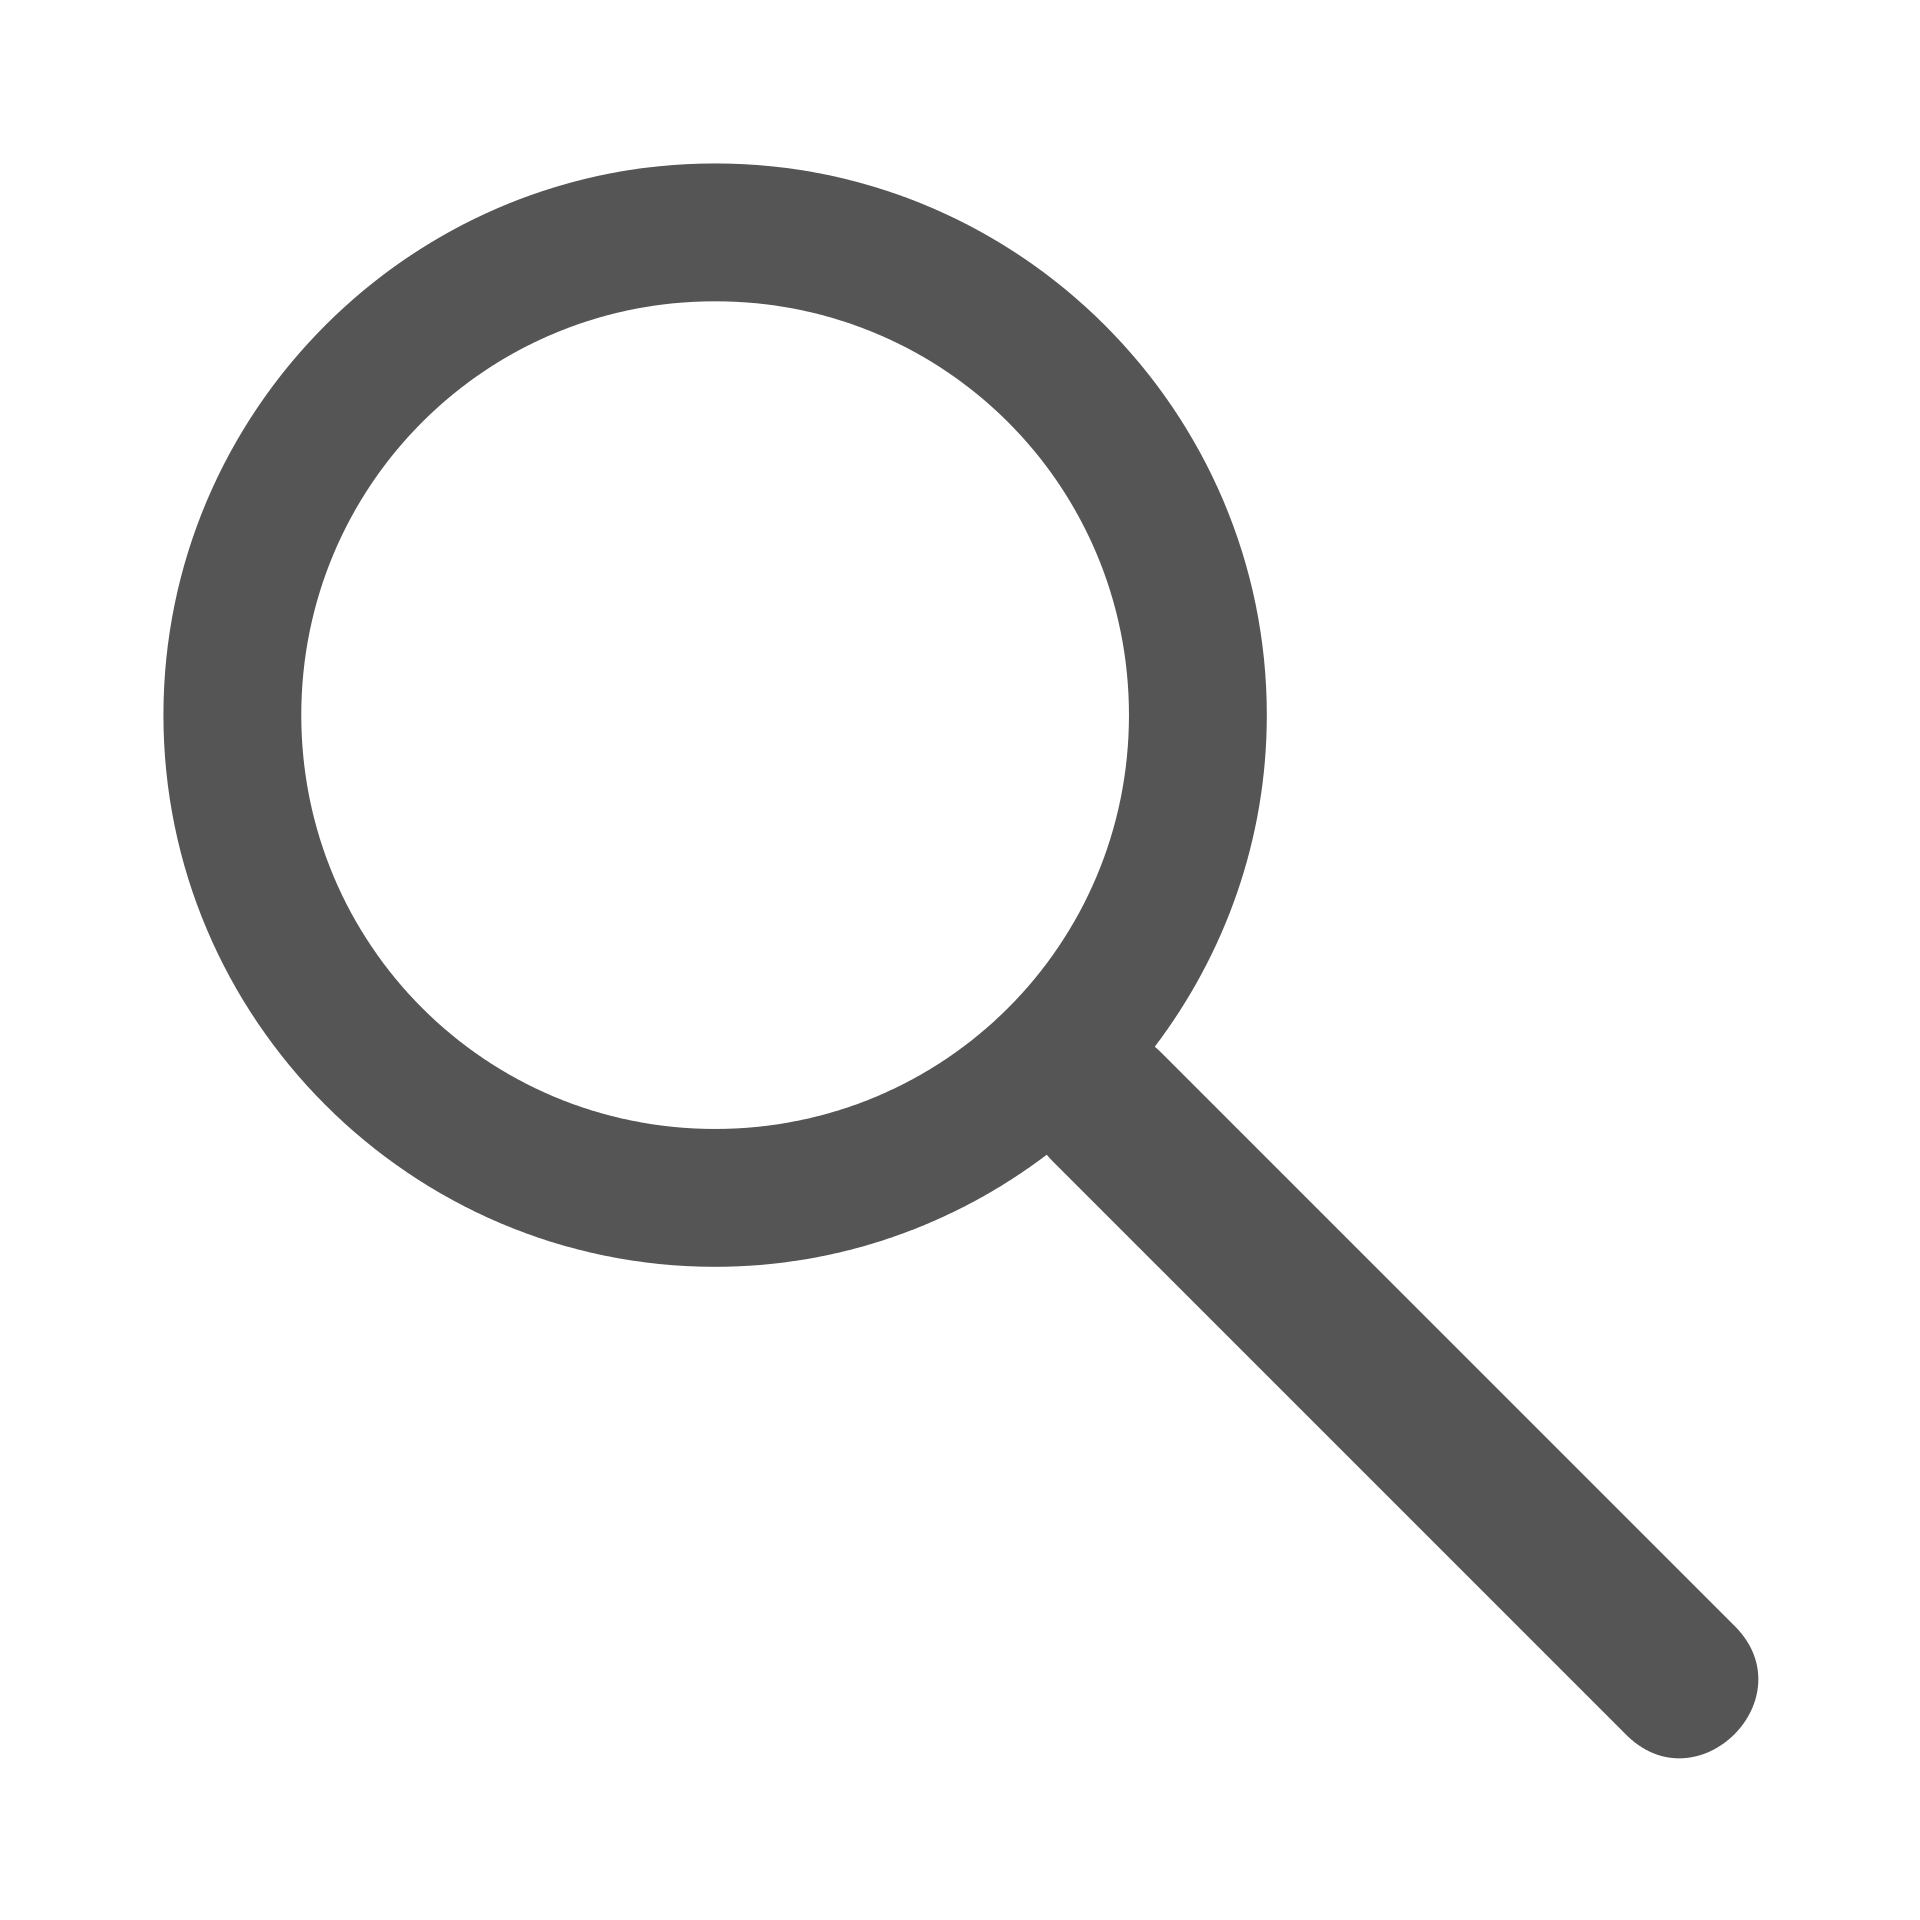 magnifying-glass-1976105.png